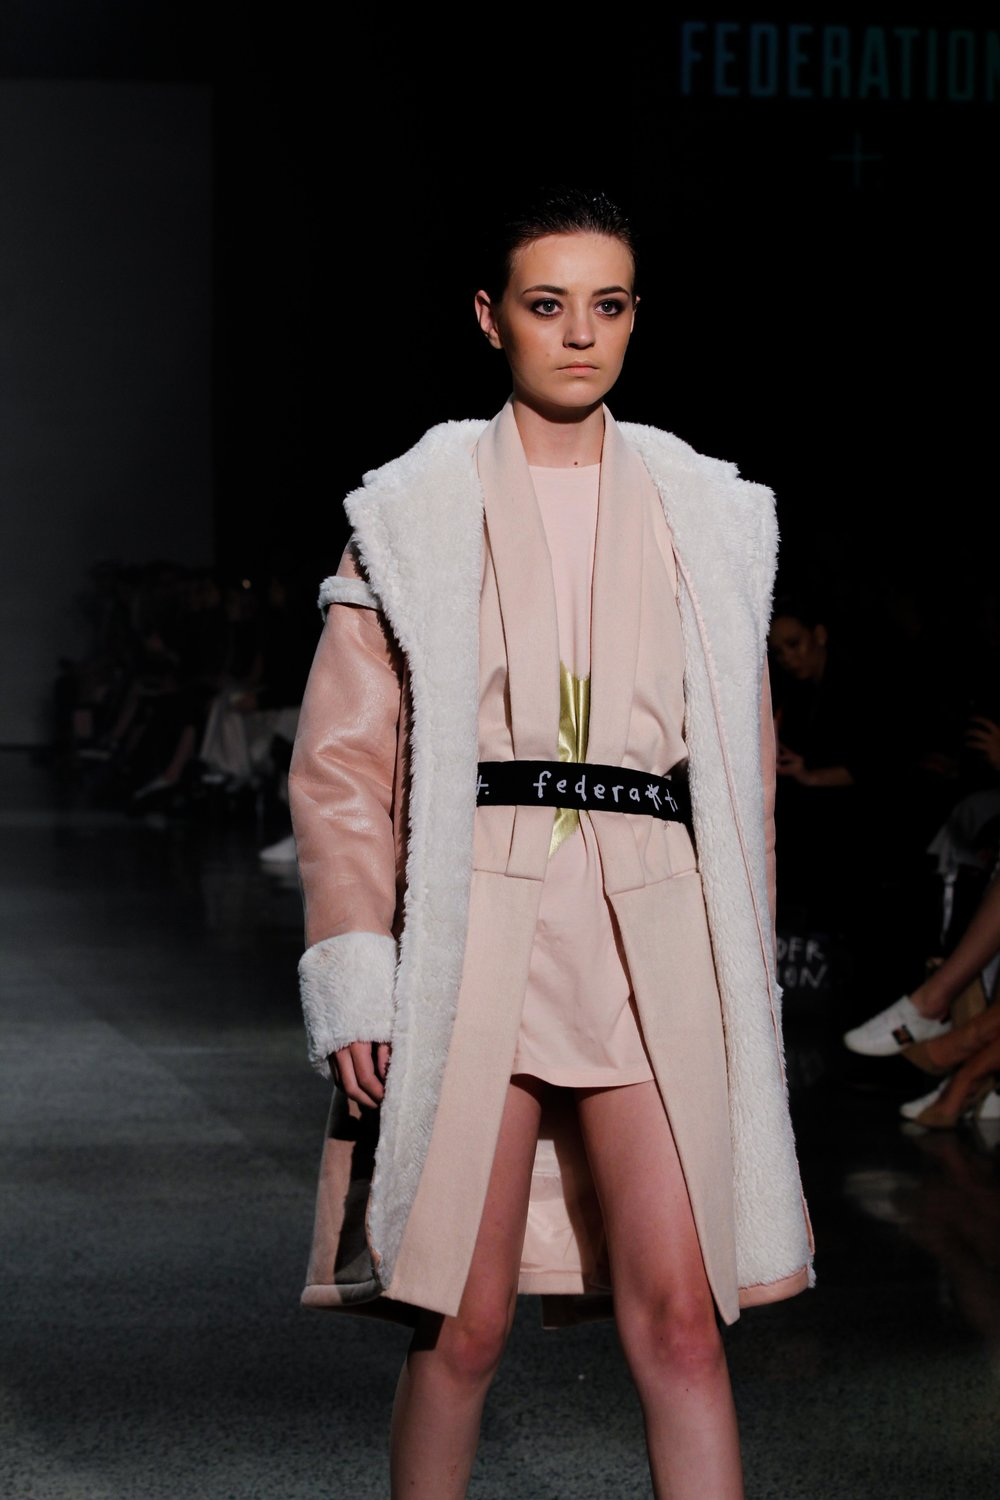 NZFW_FEDORATION_2017 (4 of 11).jpg